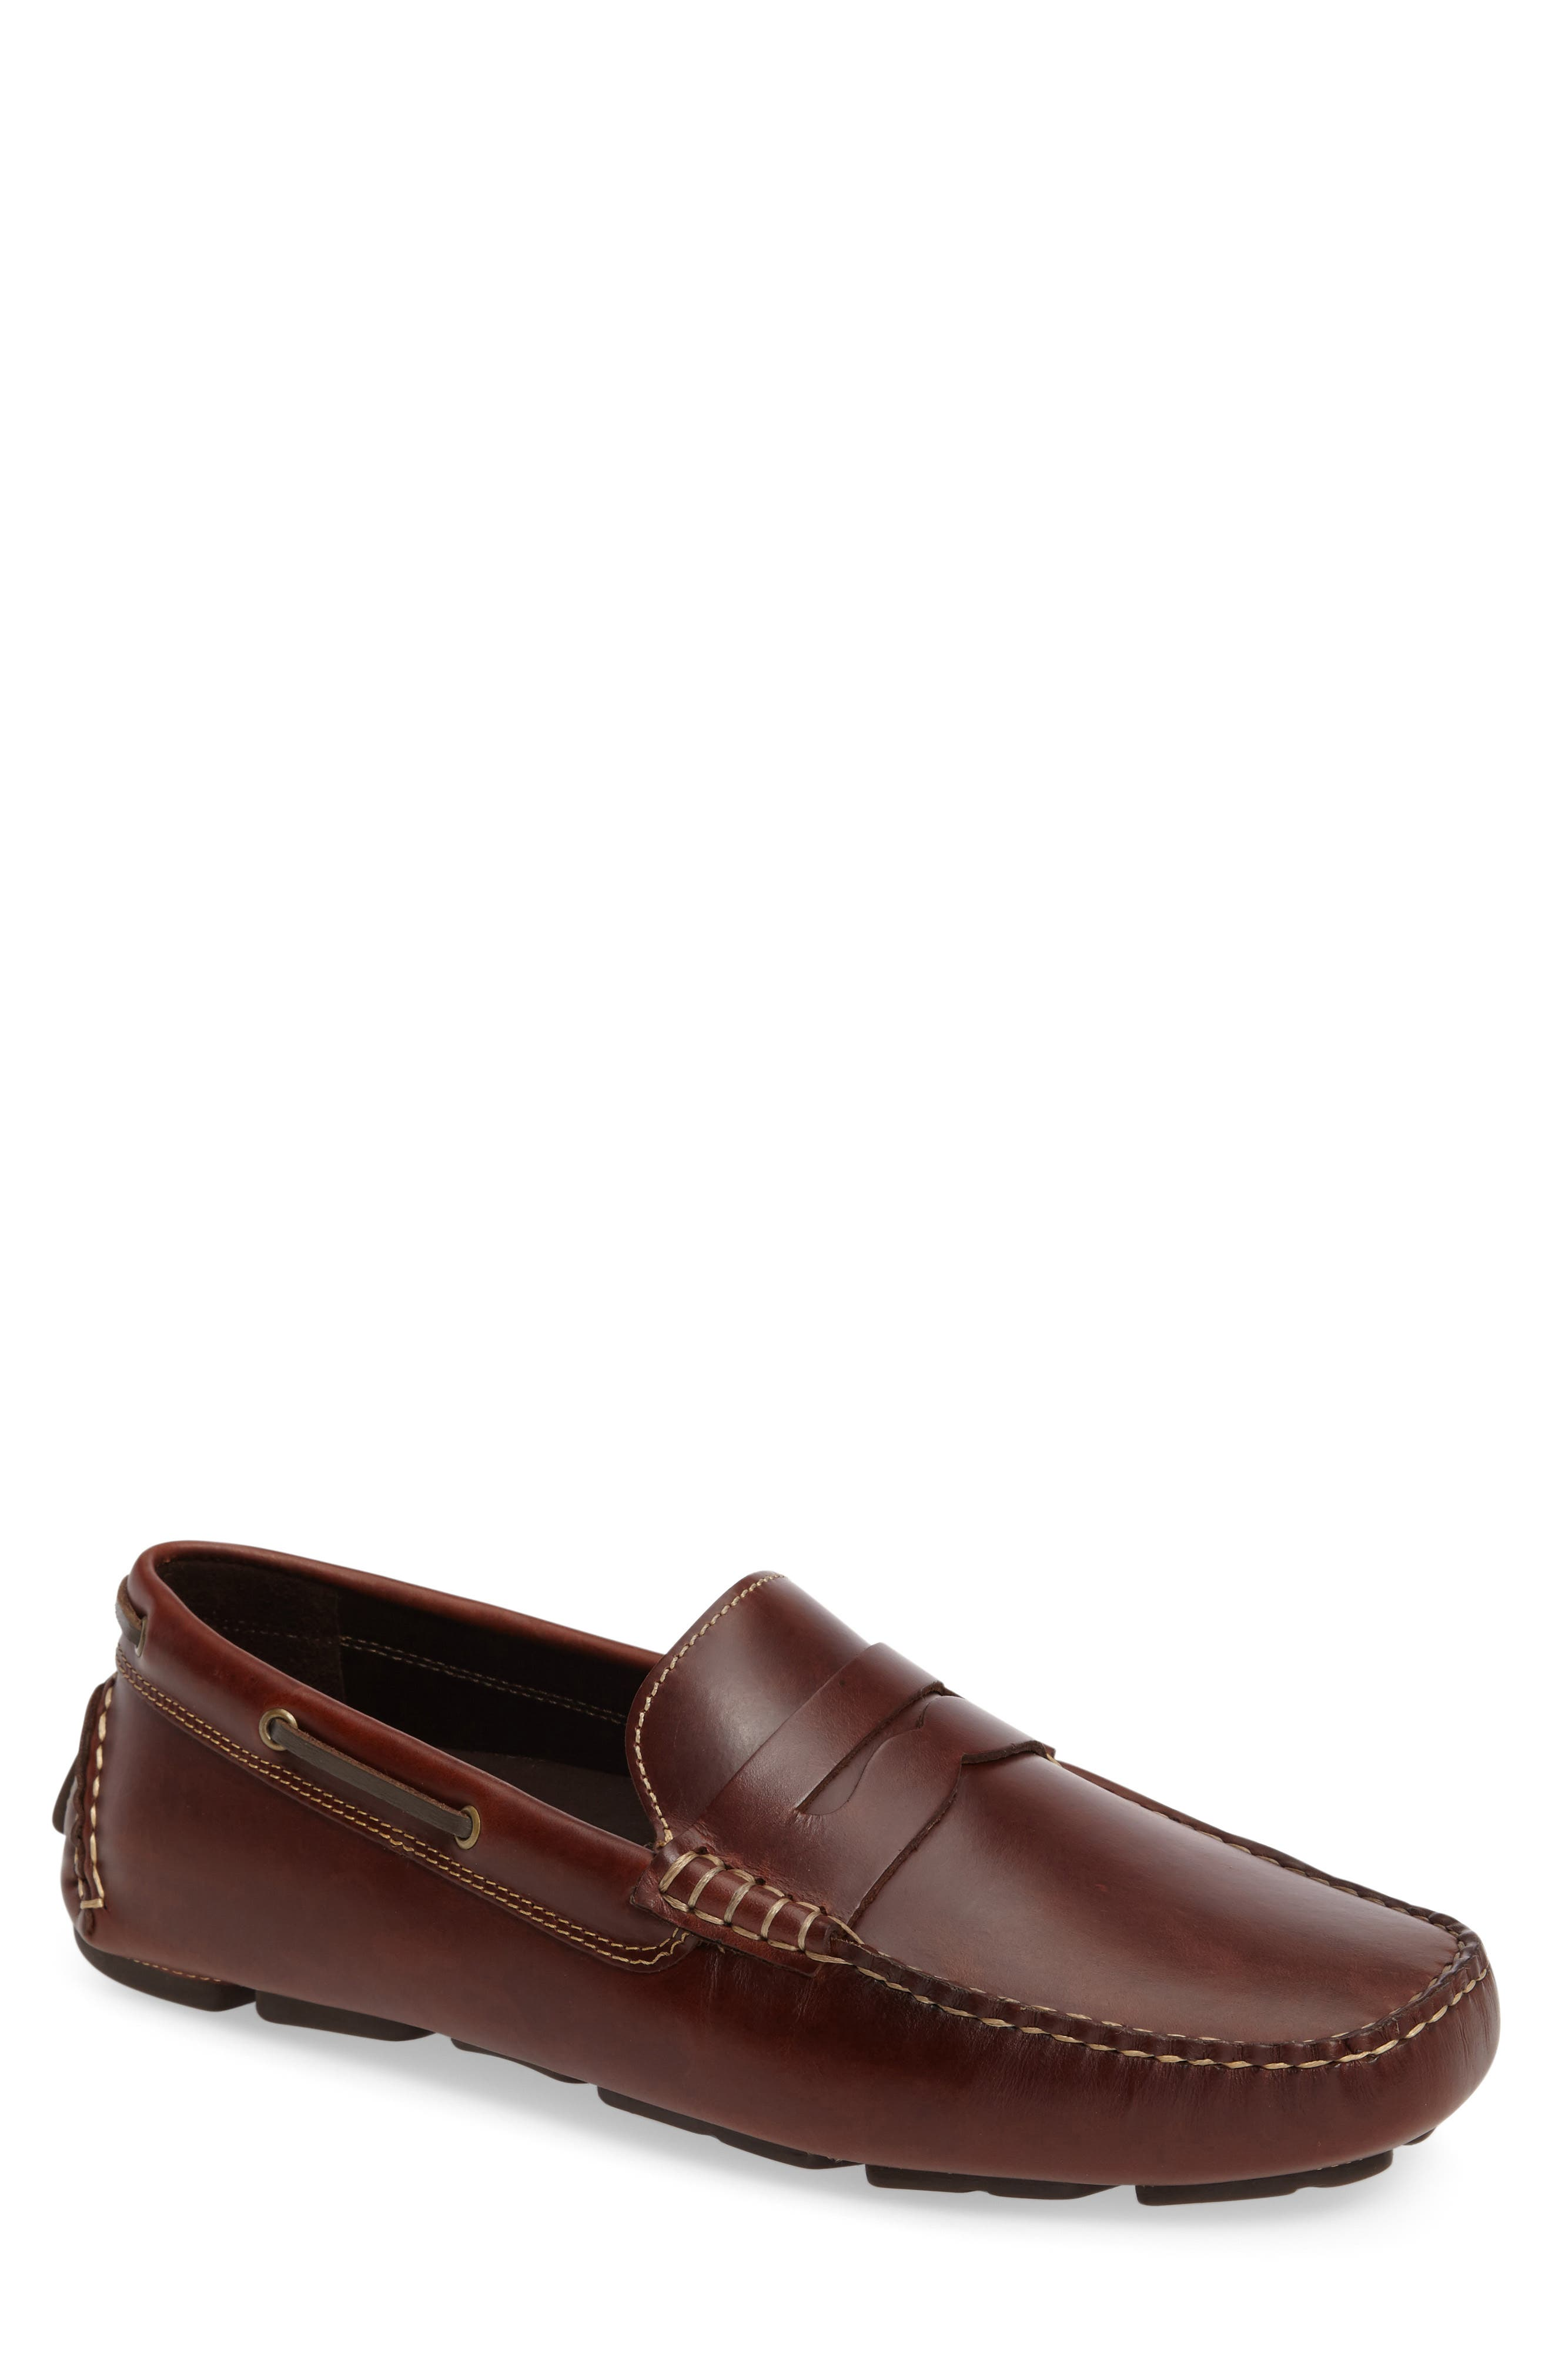 Gibson Penny Driving Loafer,                         Main,                         color, TAN LEATHER